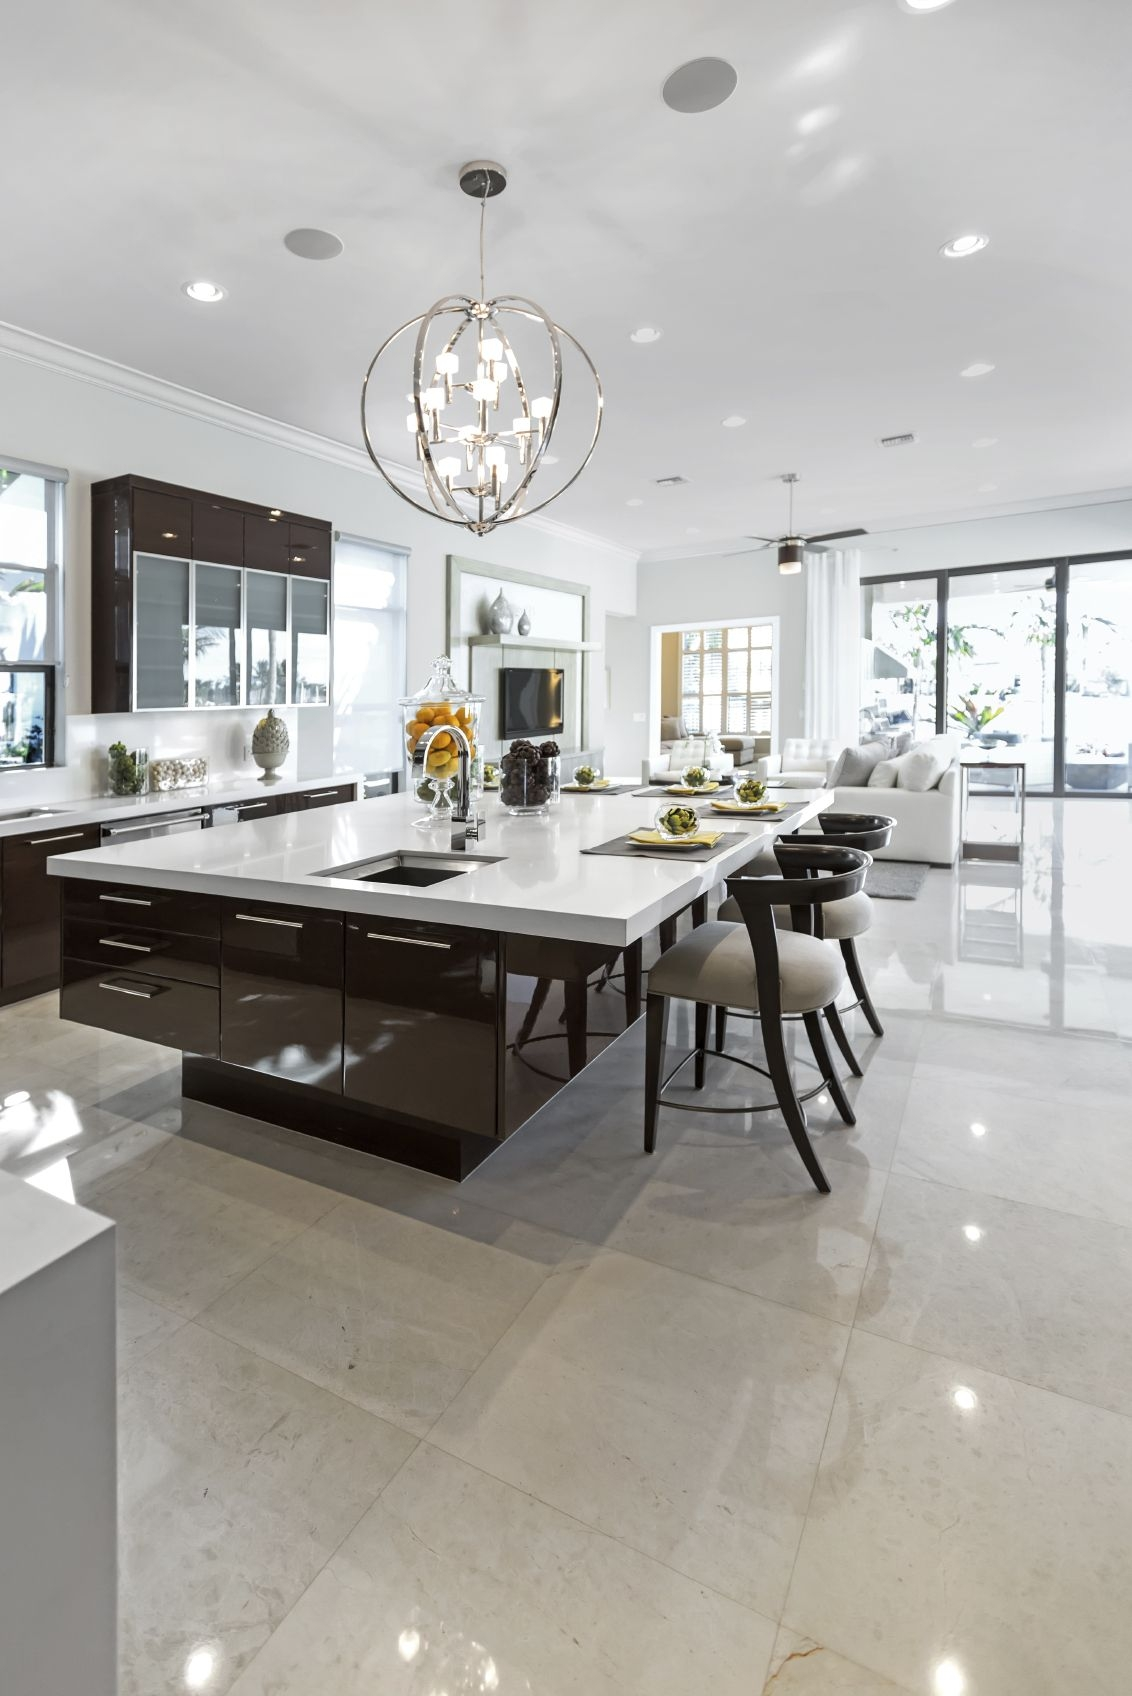 399 kitchen island ideas 2018 in 2018 kitchen dreams the heart